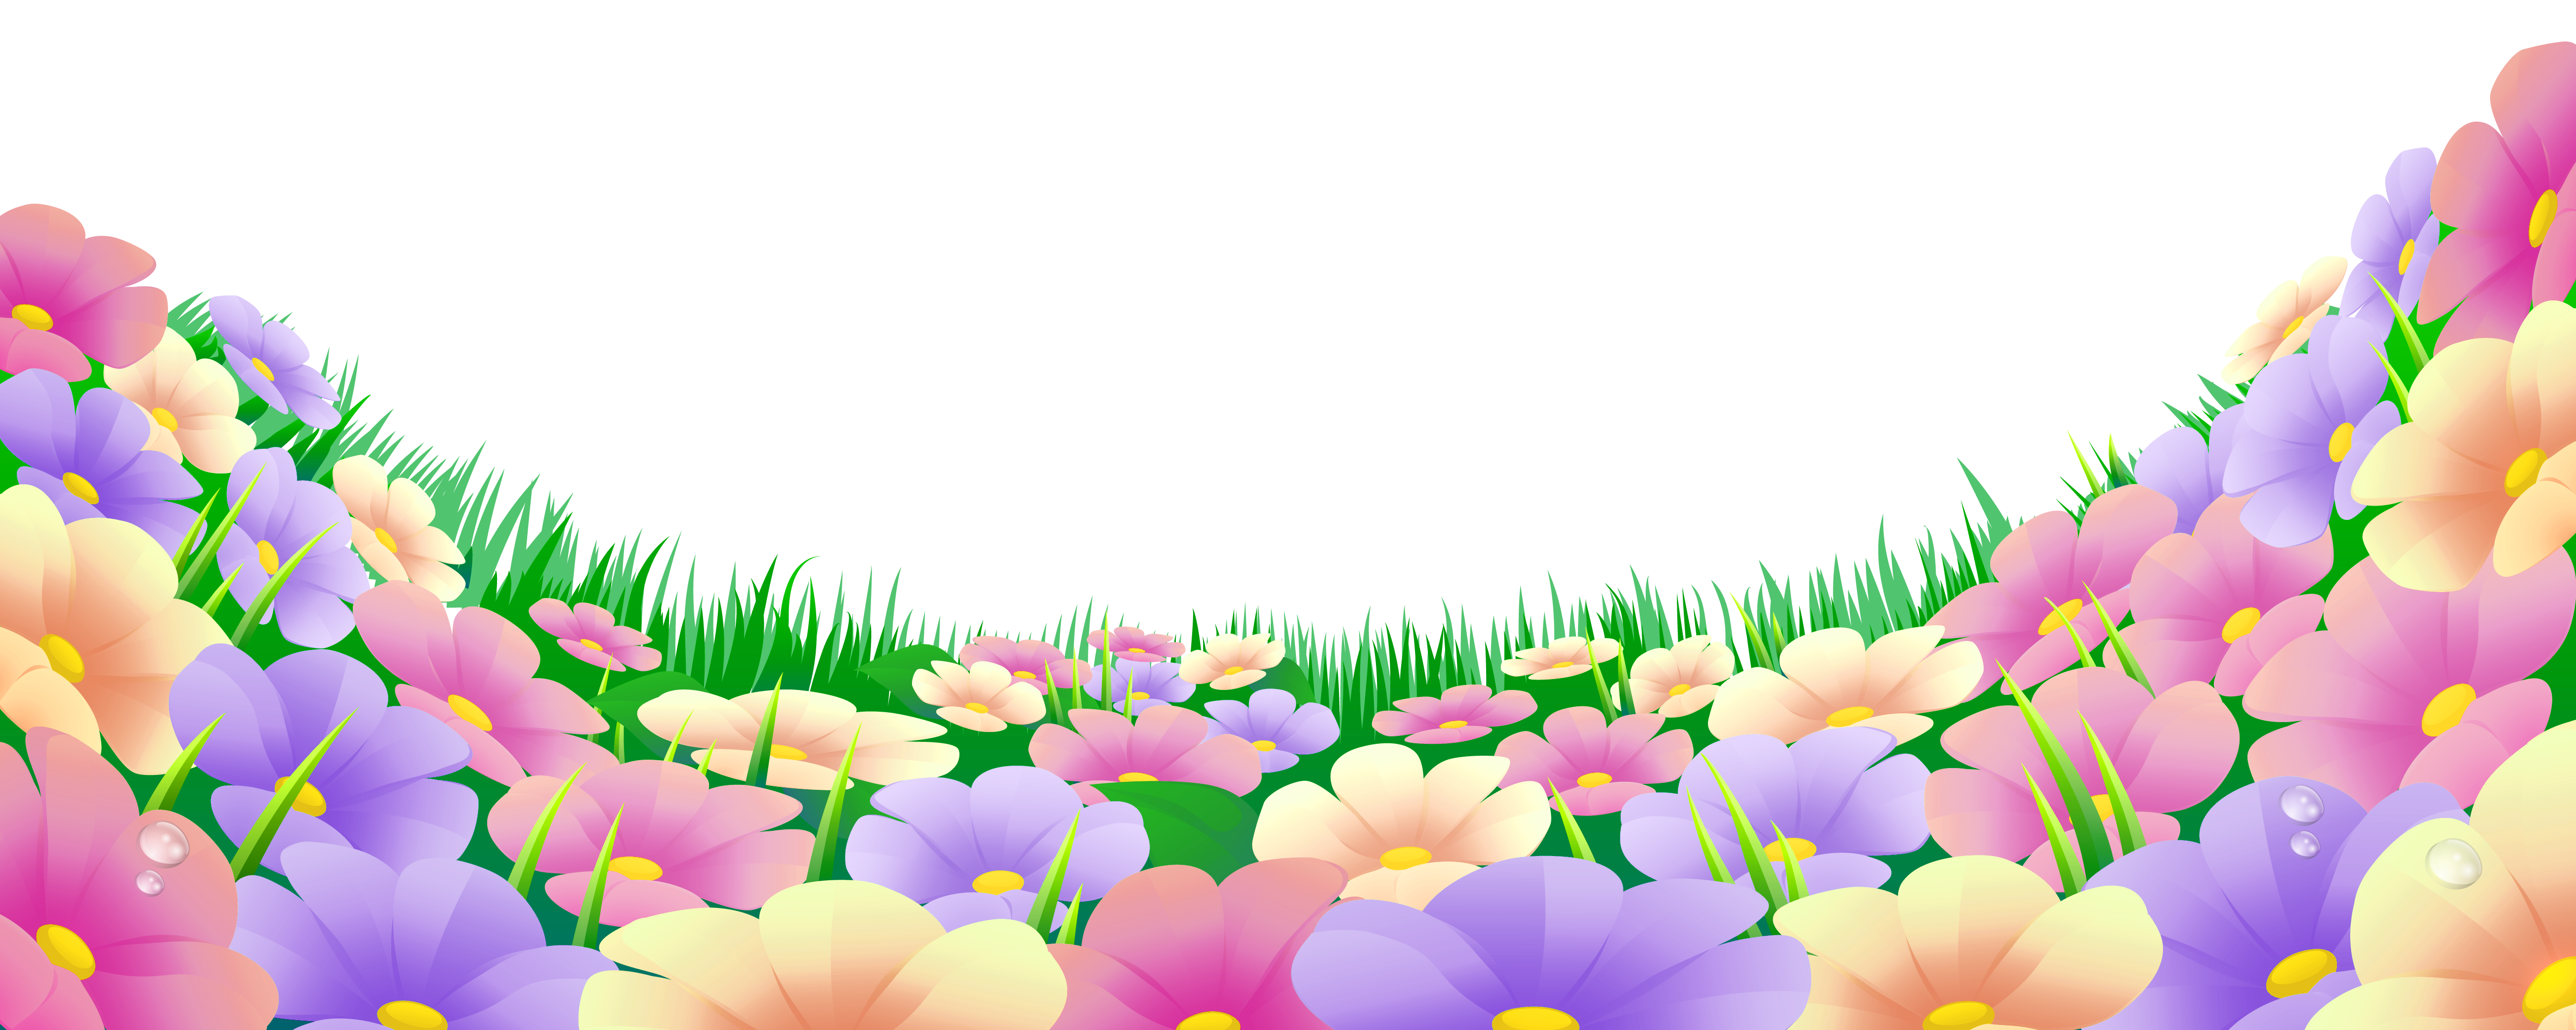 Garden Background Clipart Png.